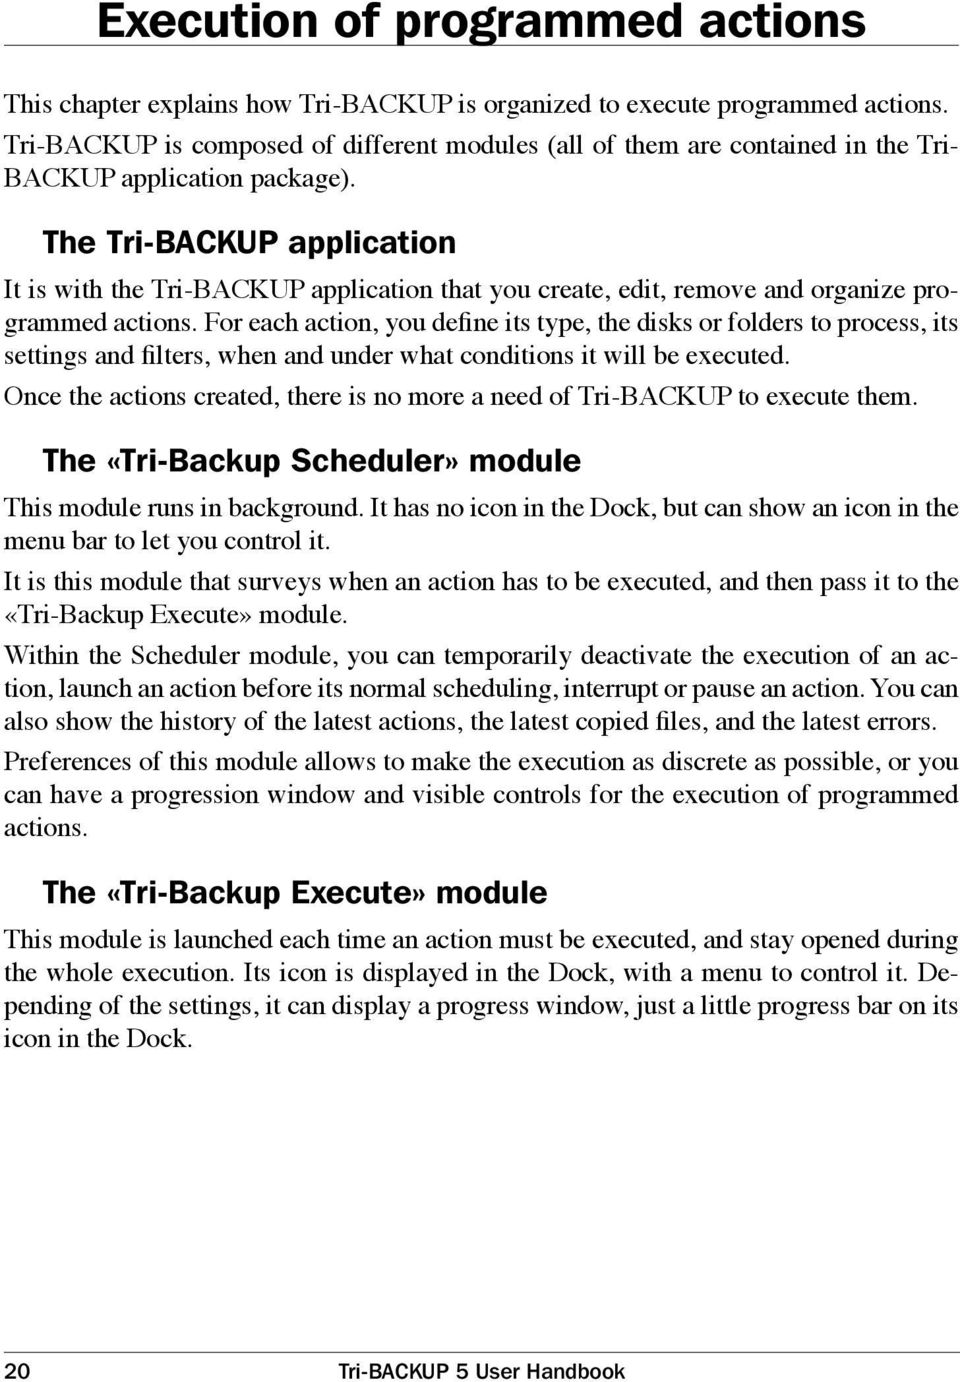 The Tri-BACKUP application It is with the Tri-BACKUP application that you create, edit, remove and organize programmed actions.